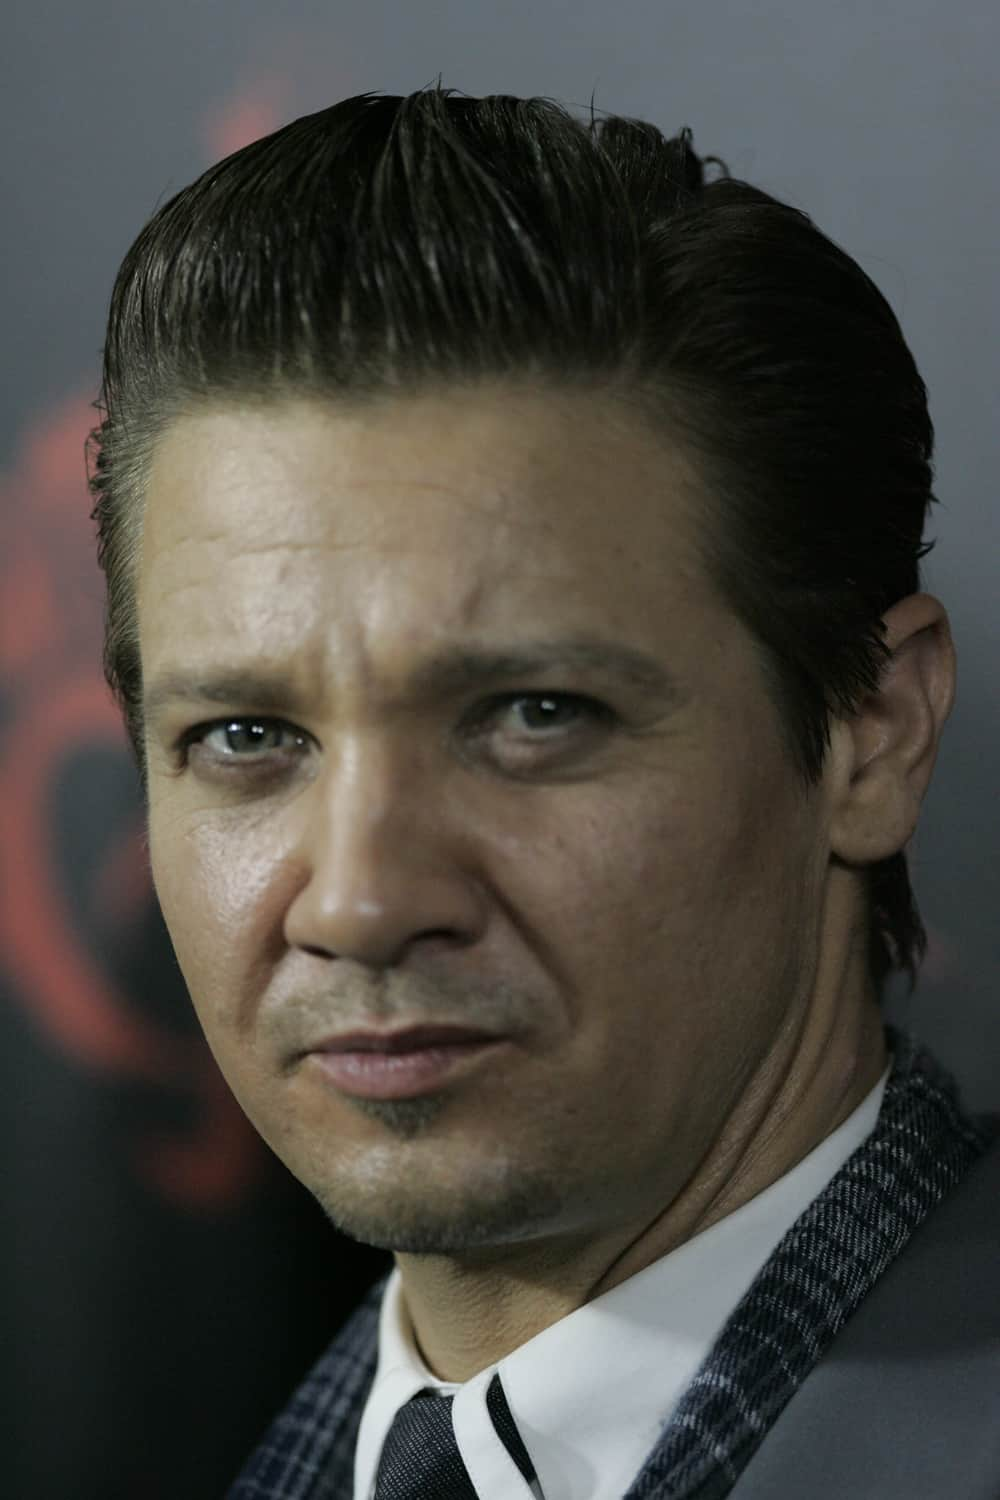 Hollywood Spotlight: Jeremy Renner